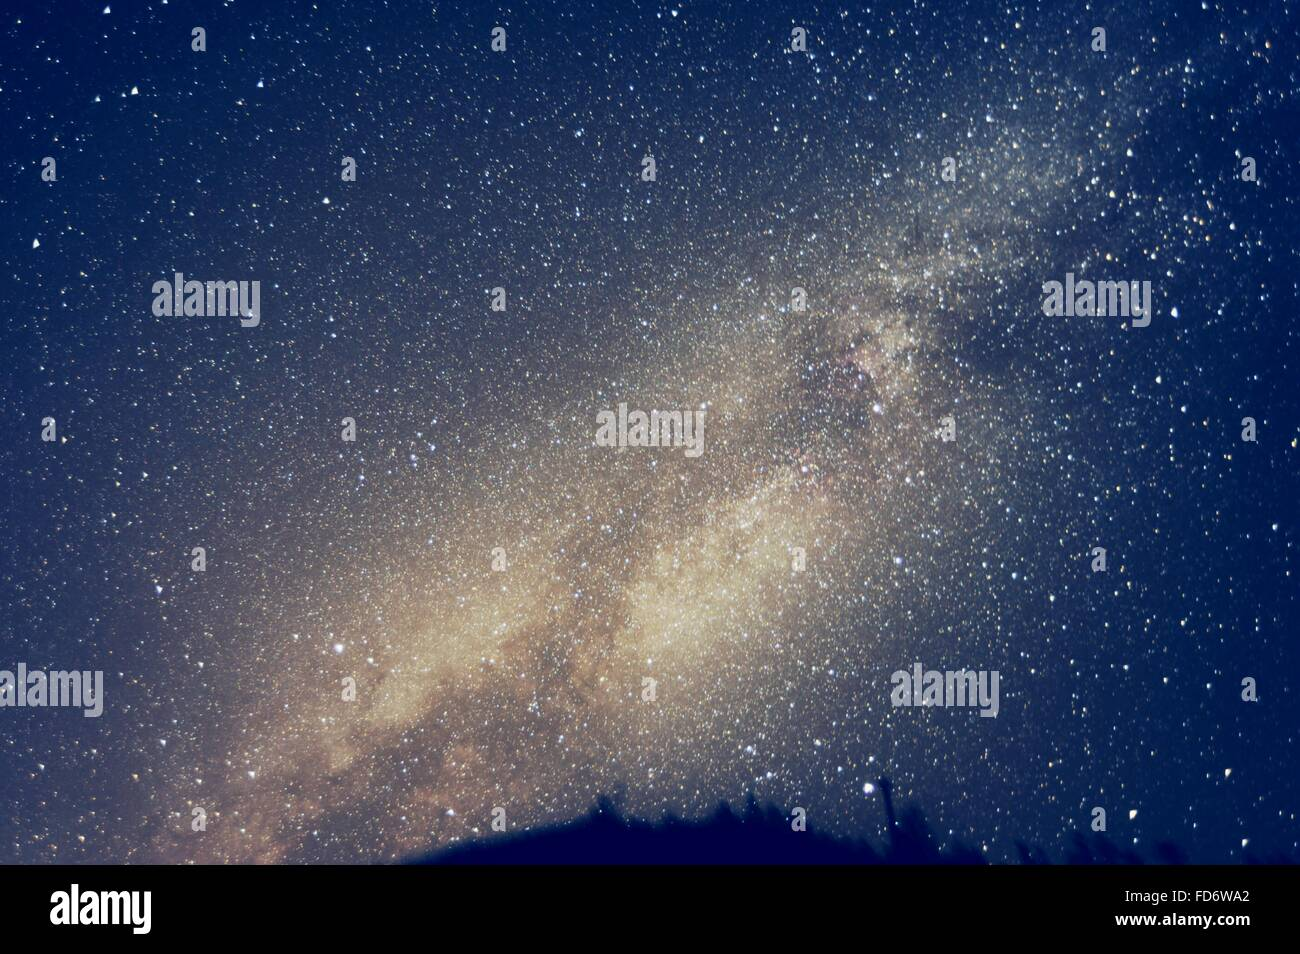 Low Angle View of Stars In Sky Photo Stock